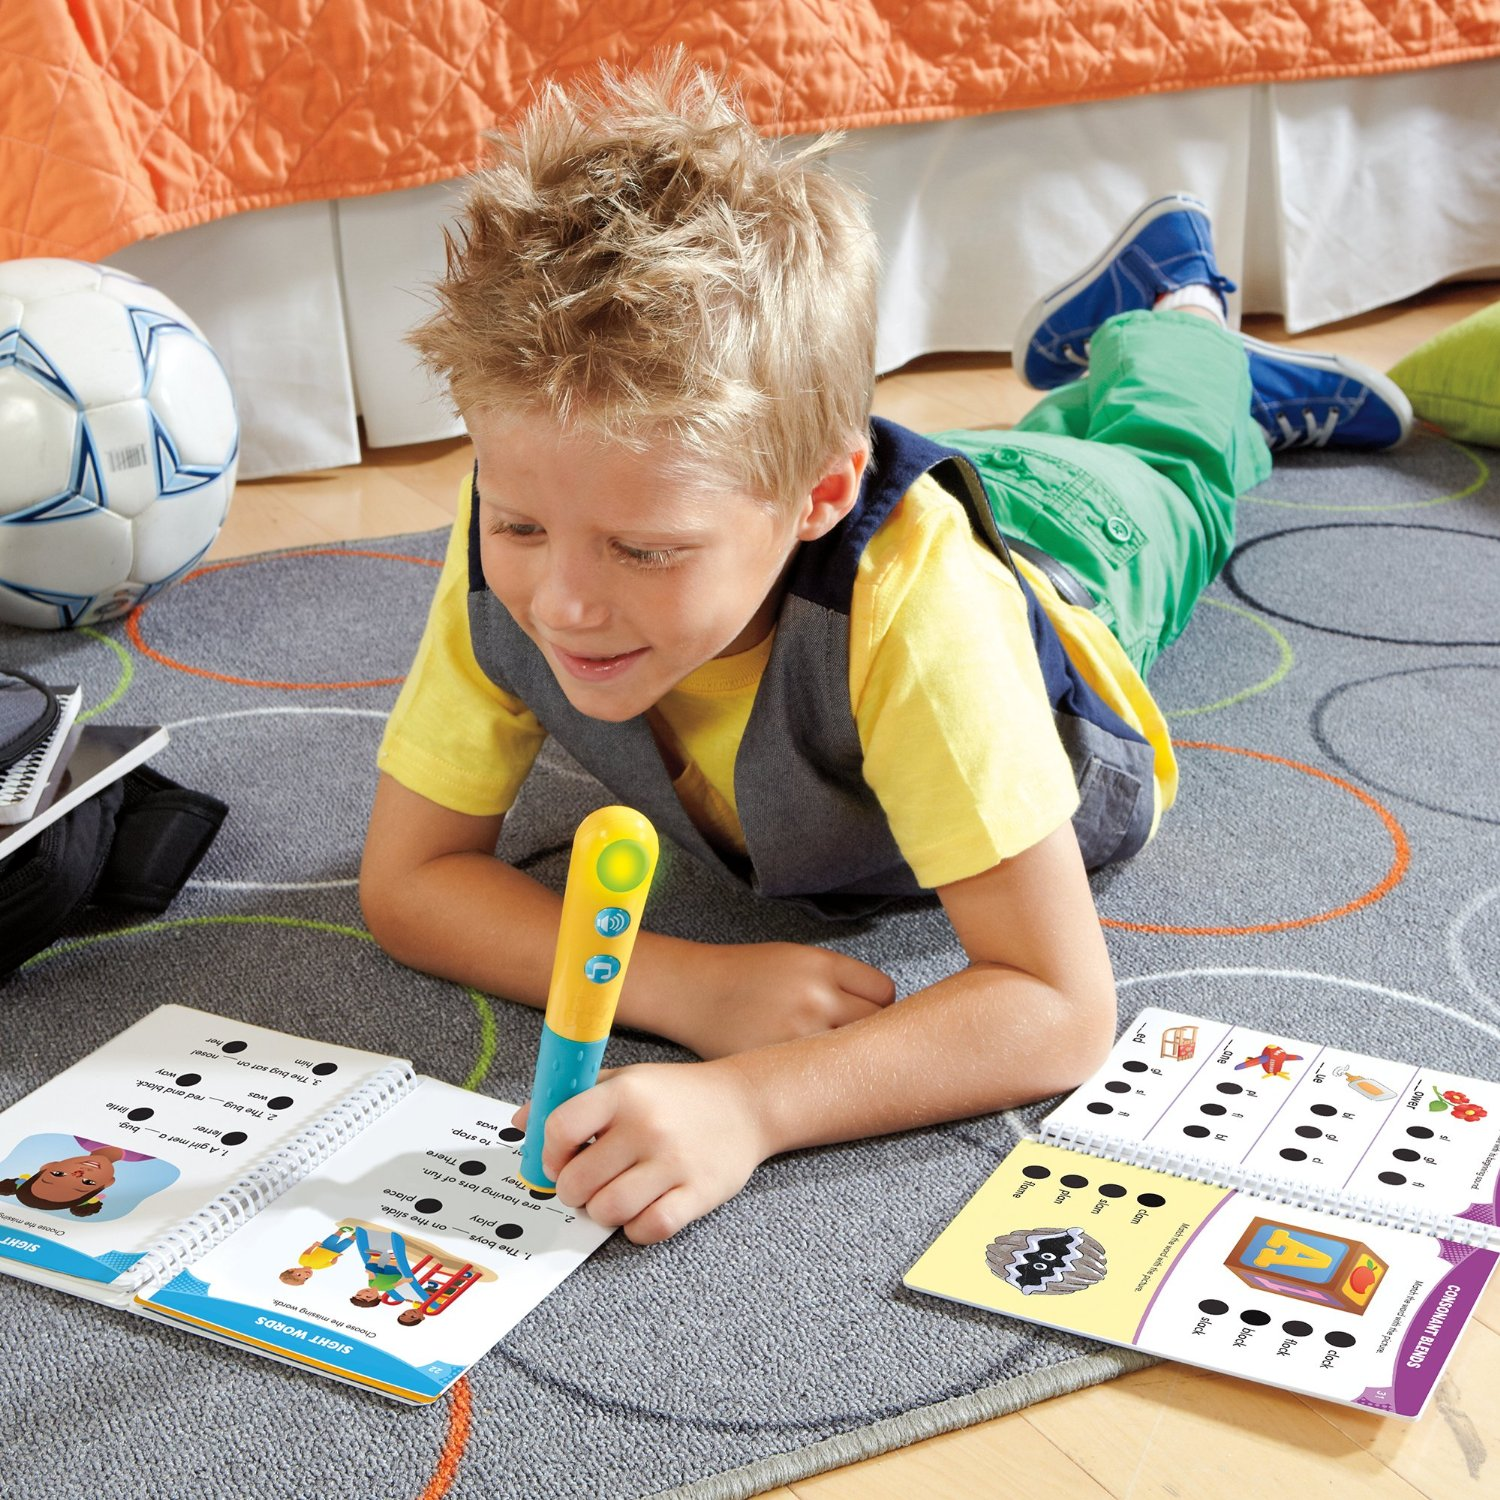 Low Price Branded Toys Reading & Writing 4littleboyz